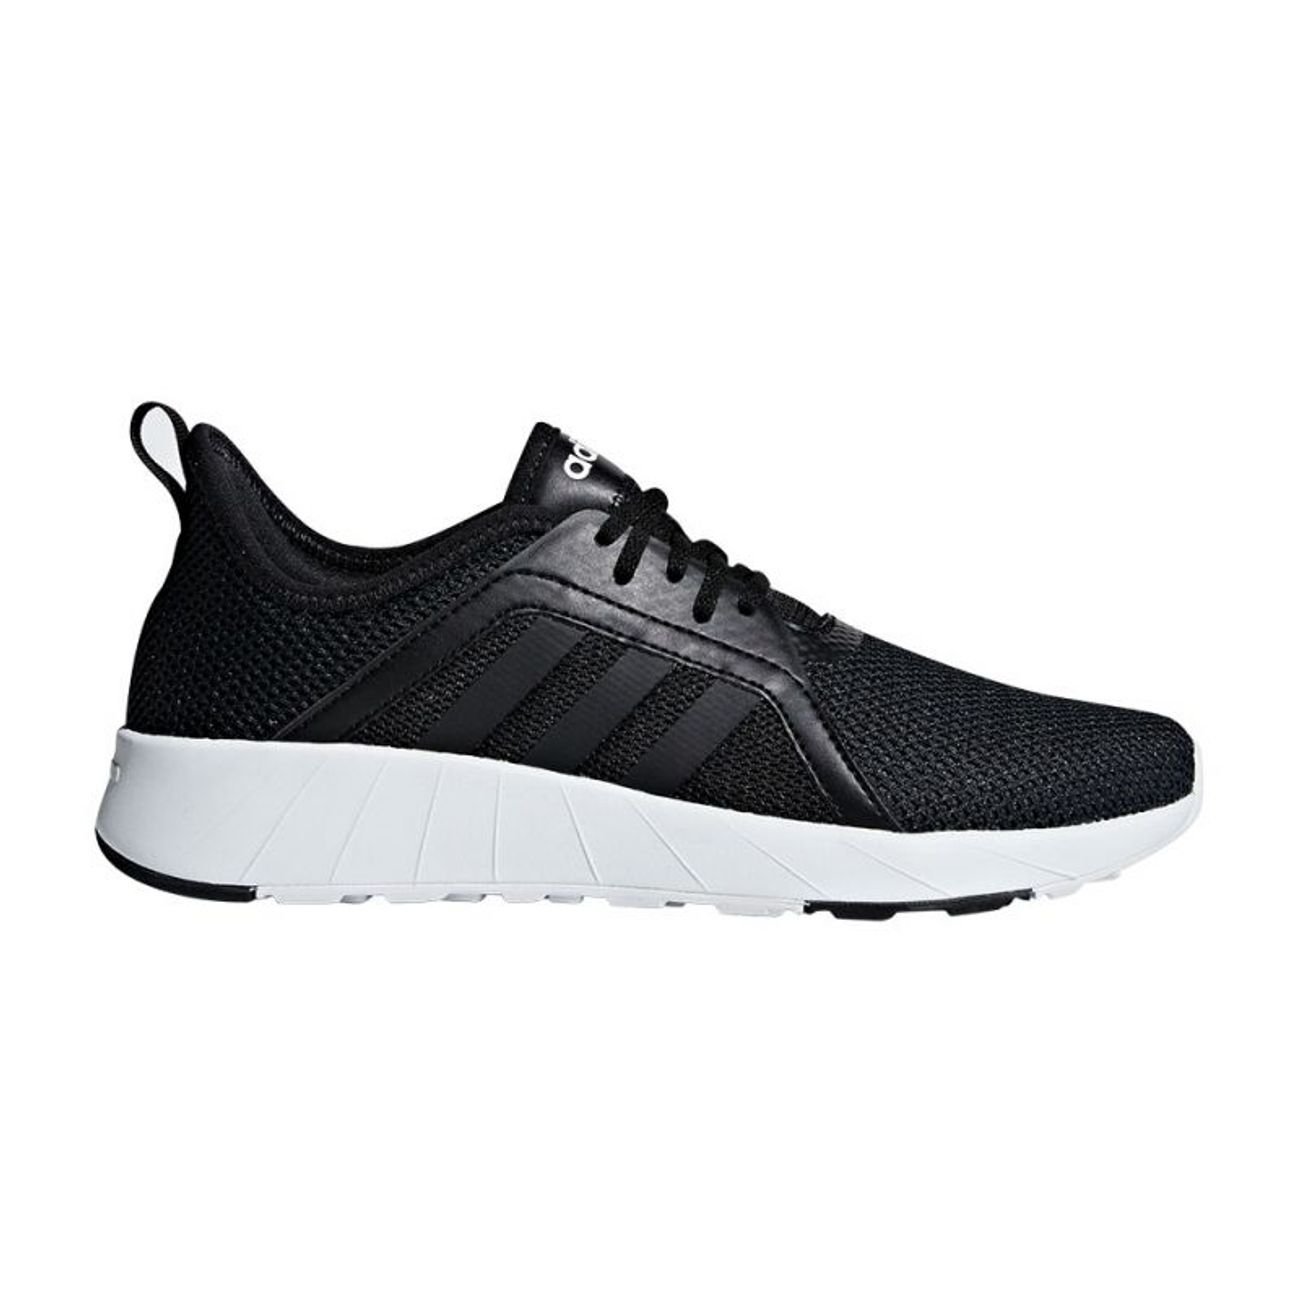 Mujer Adidas Questar Adulte Sumr Negro F36513 Padel doexBC